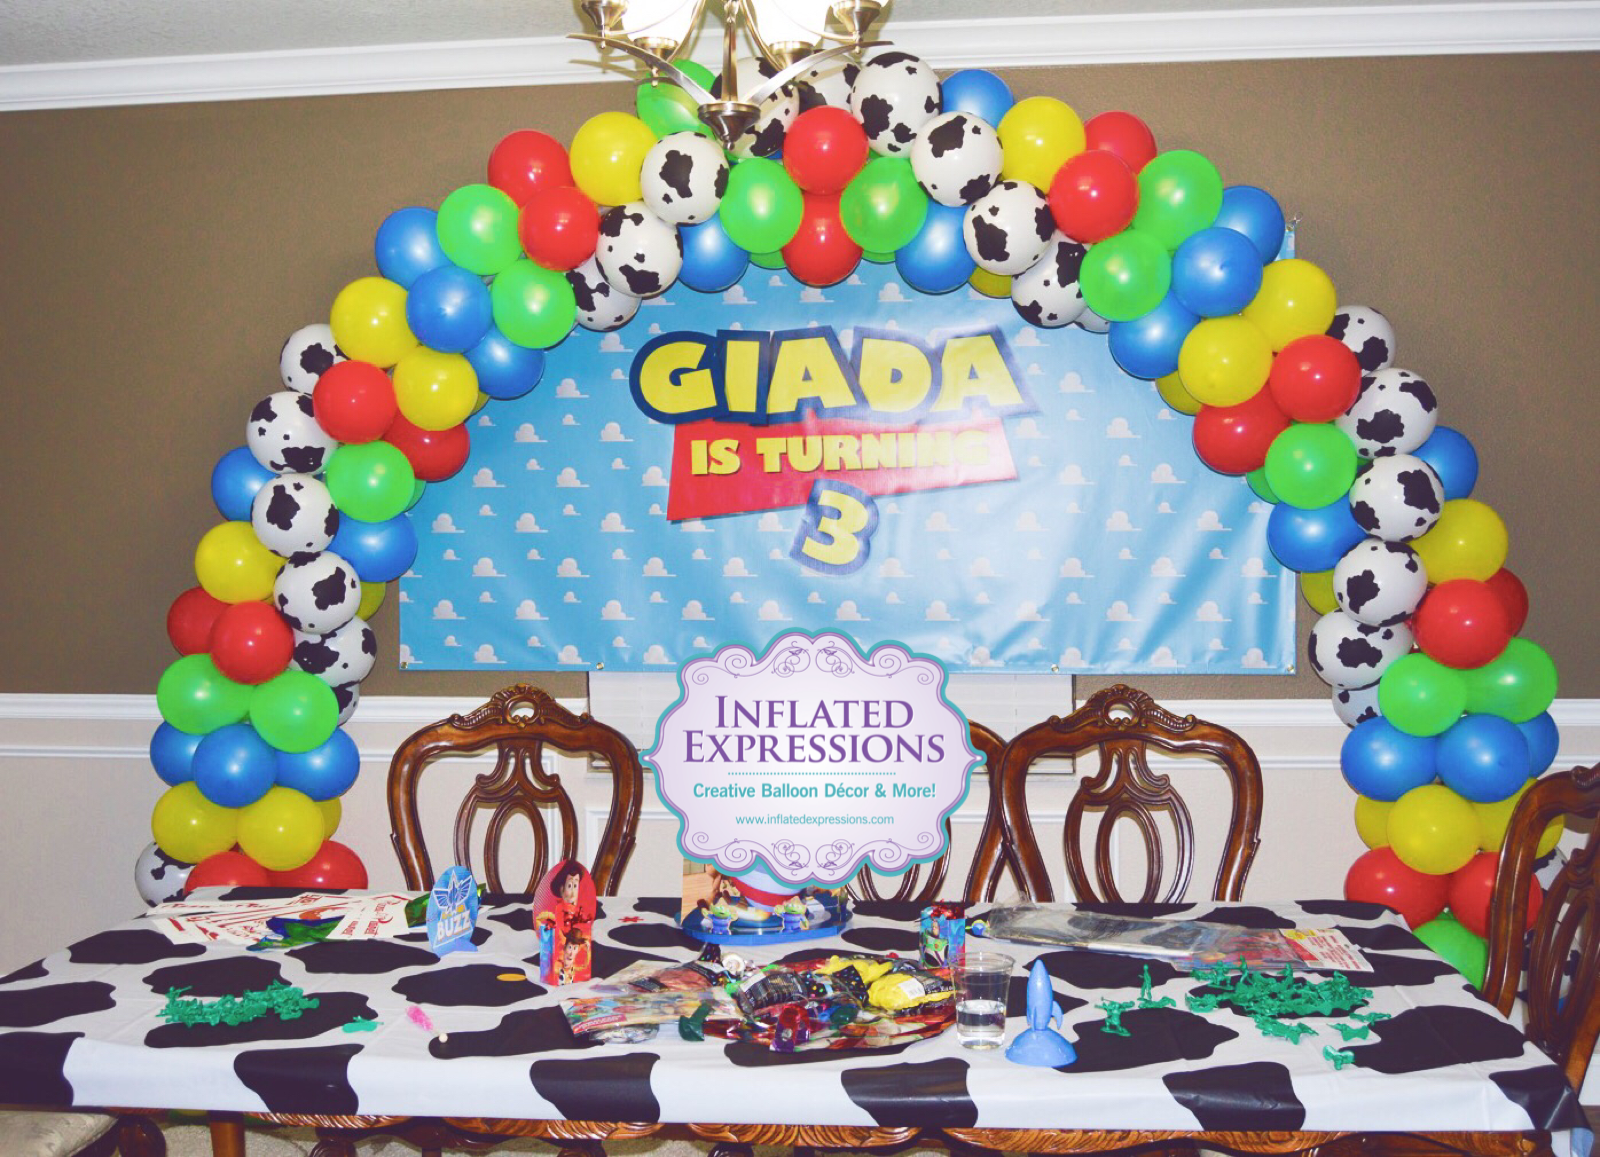 Medium Sized Balloon Arch Inflated Expressions